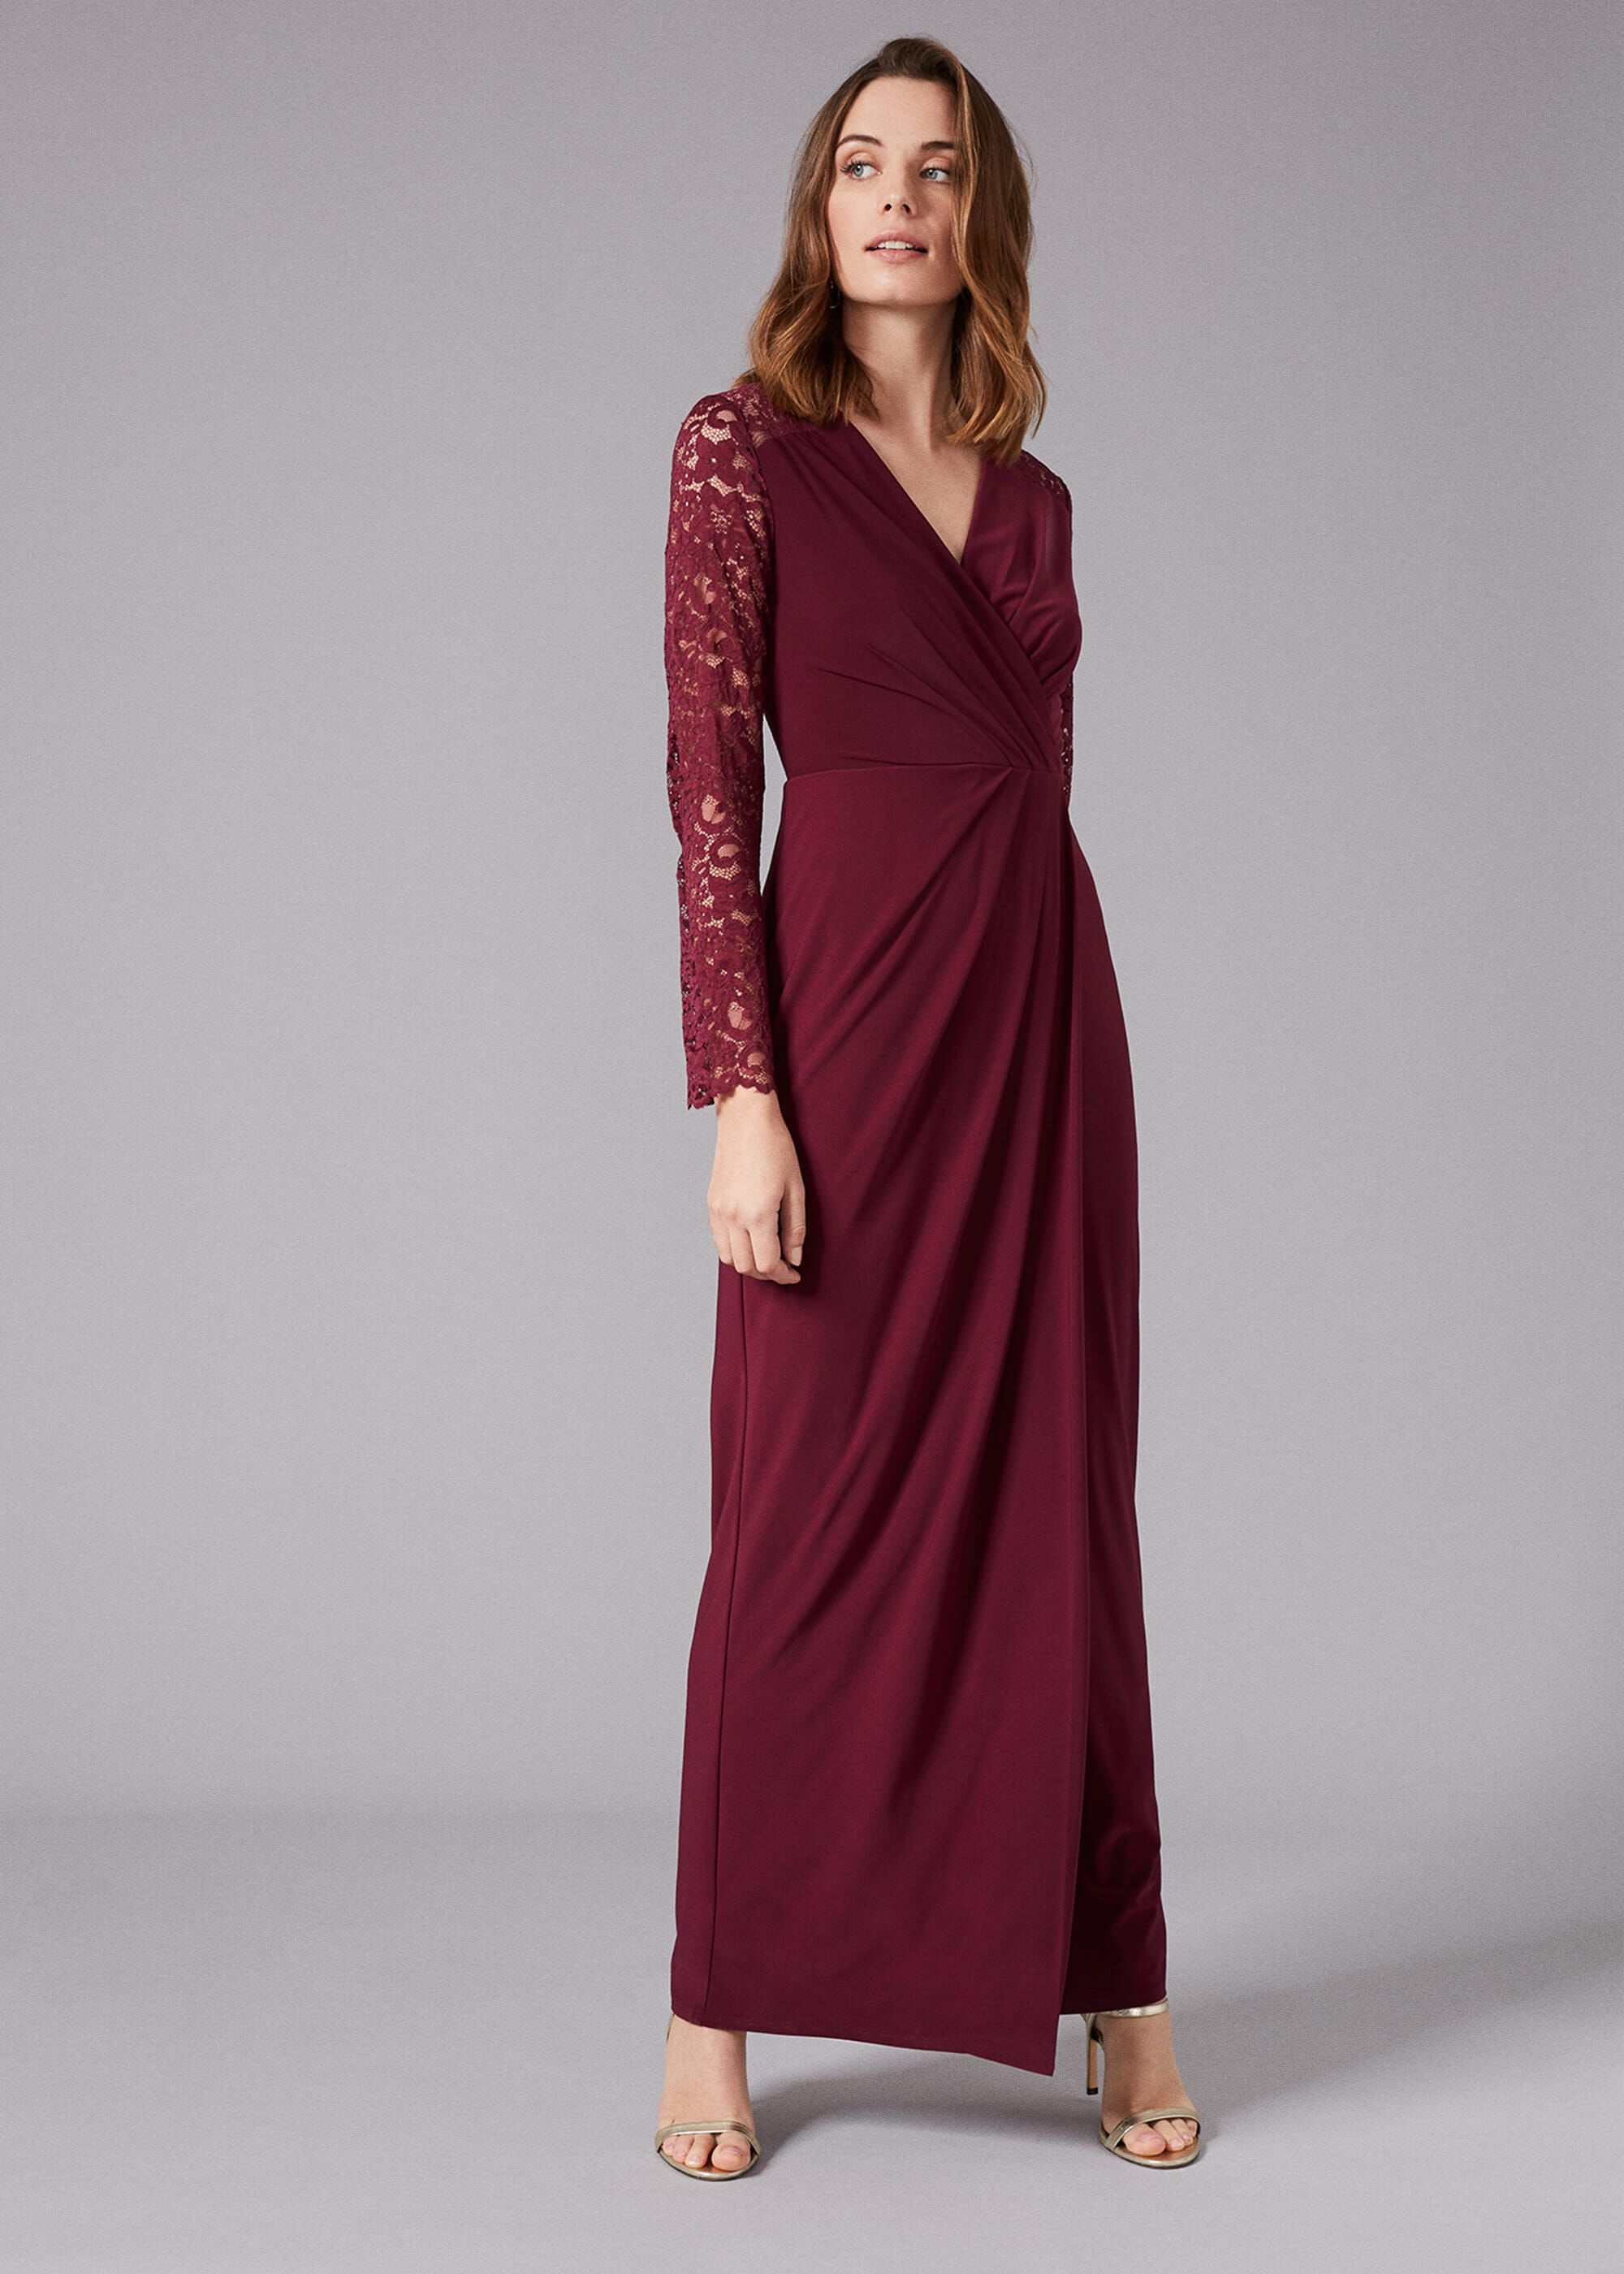 Phase Eight Elanor Lace Maxi Dress, Red, Maxi